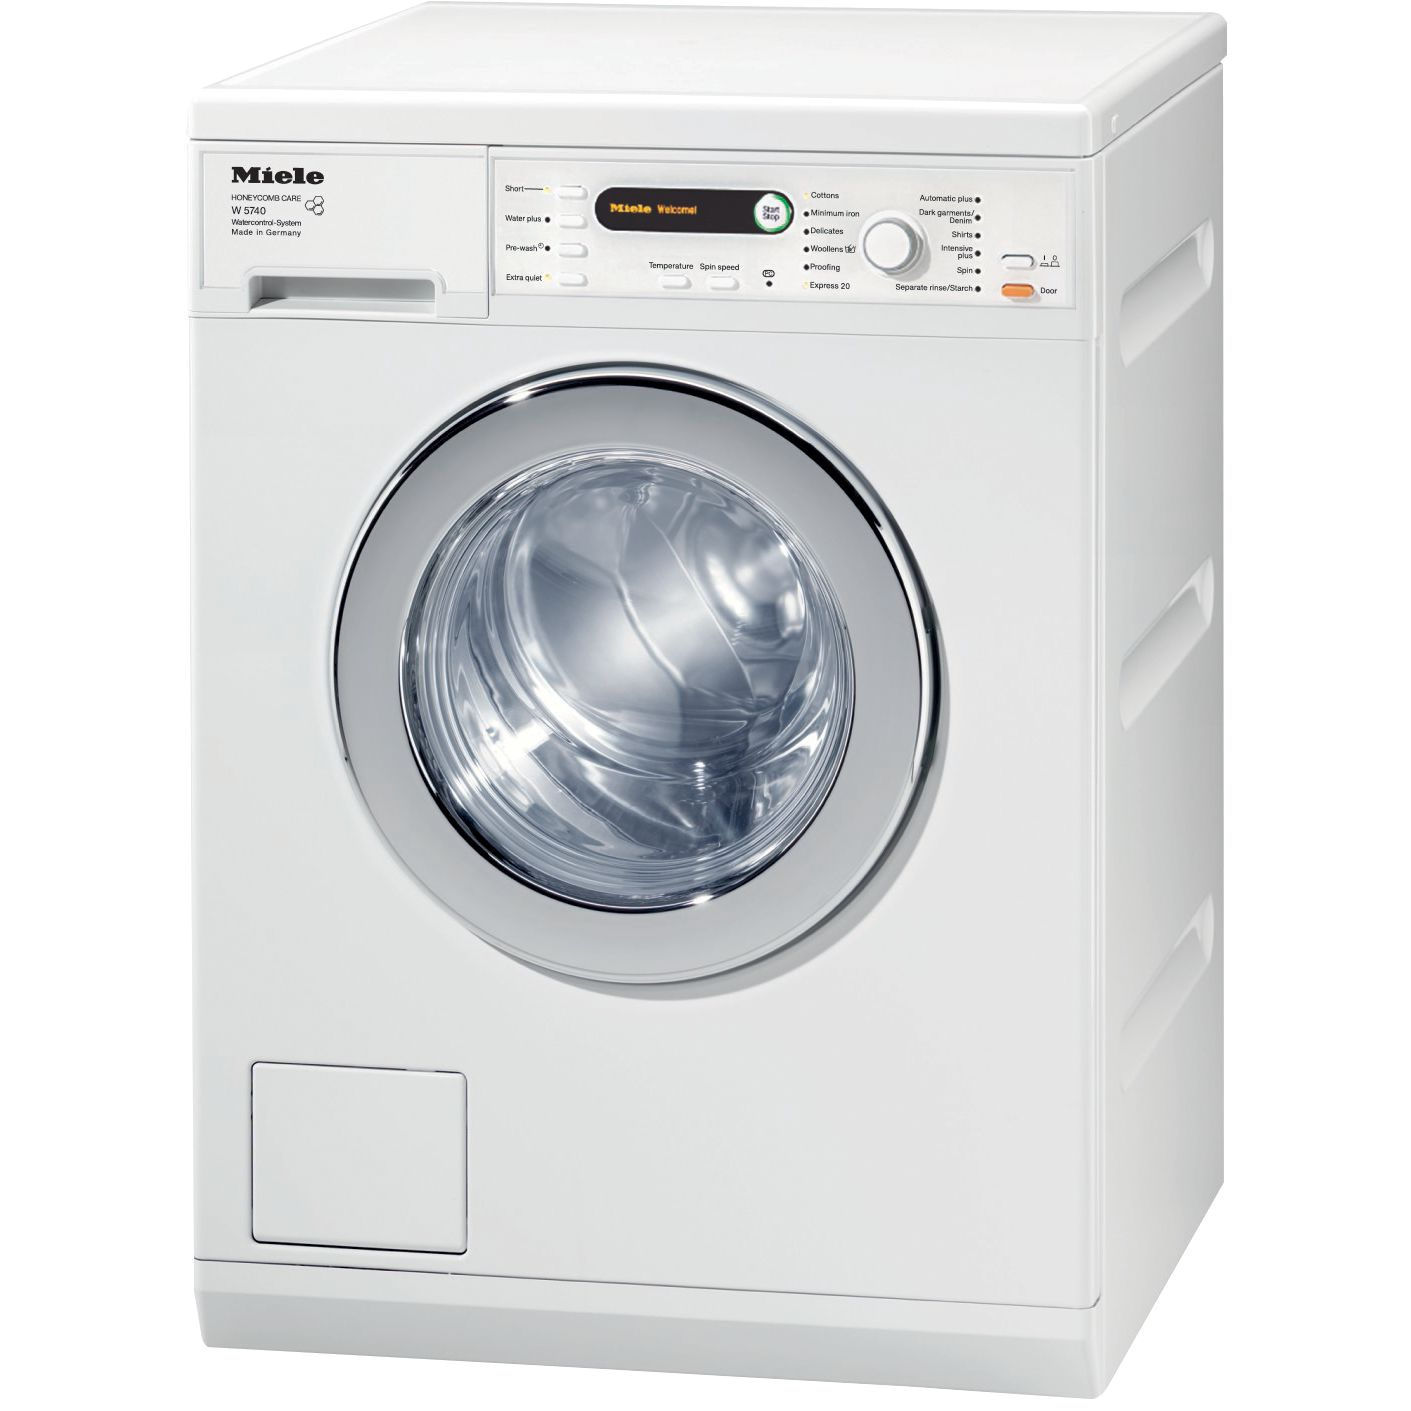 Miele W5740 Washing Machine, 7kg Load, A+++ Energy Rating, 1400rpm Spin, White